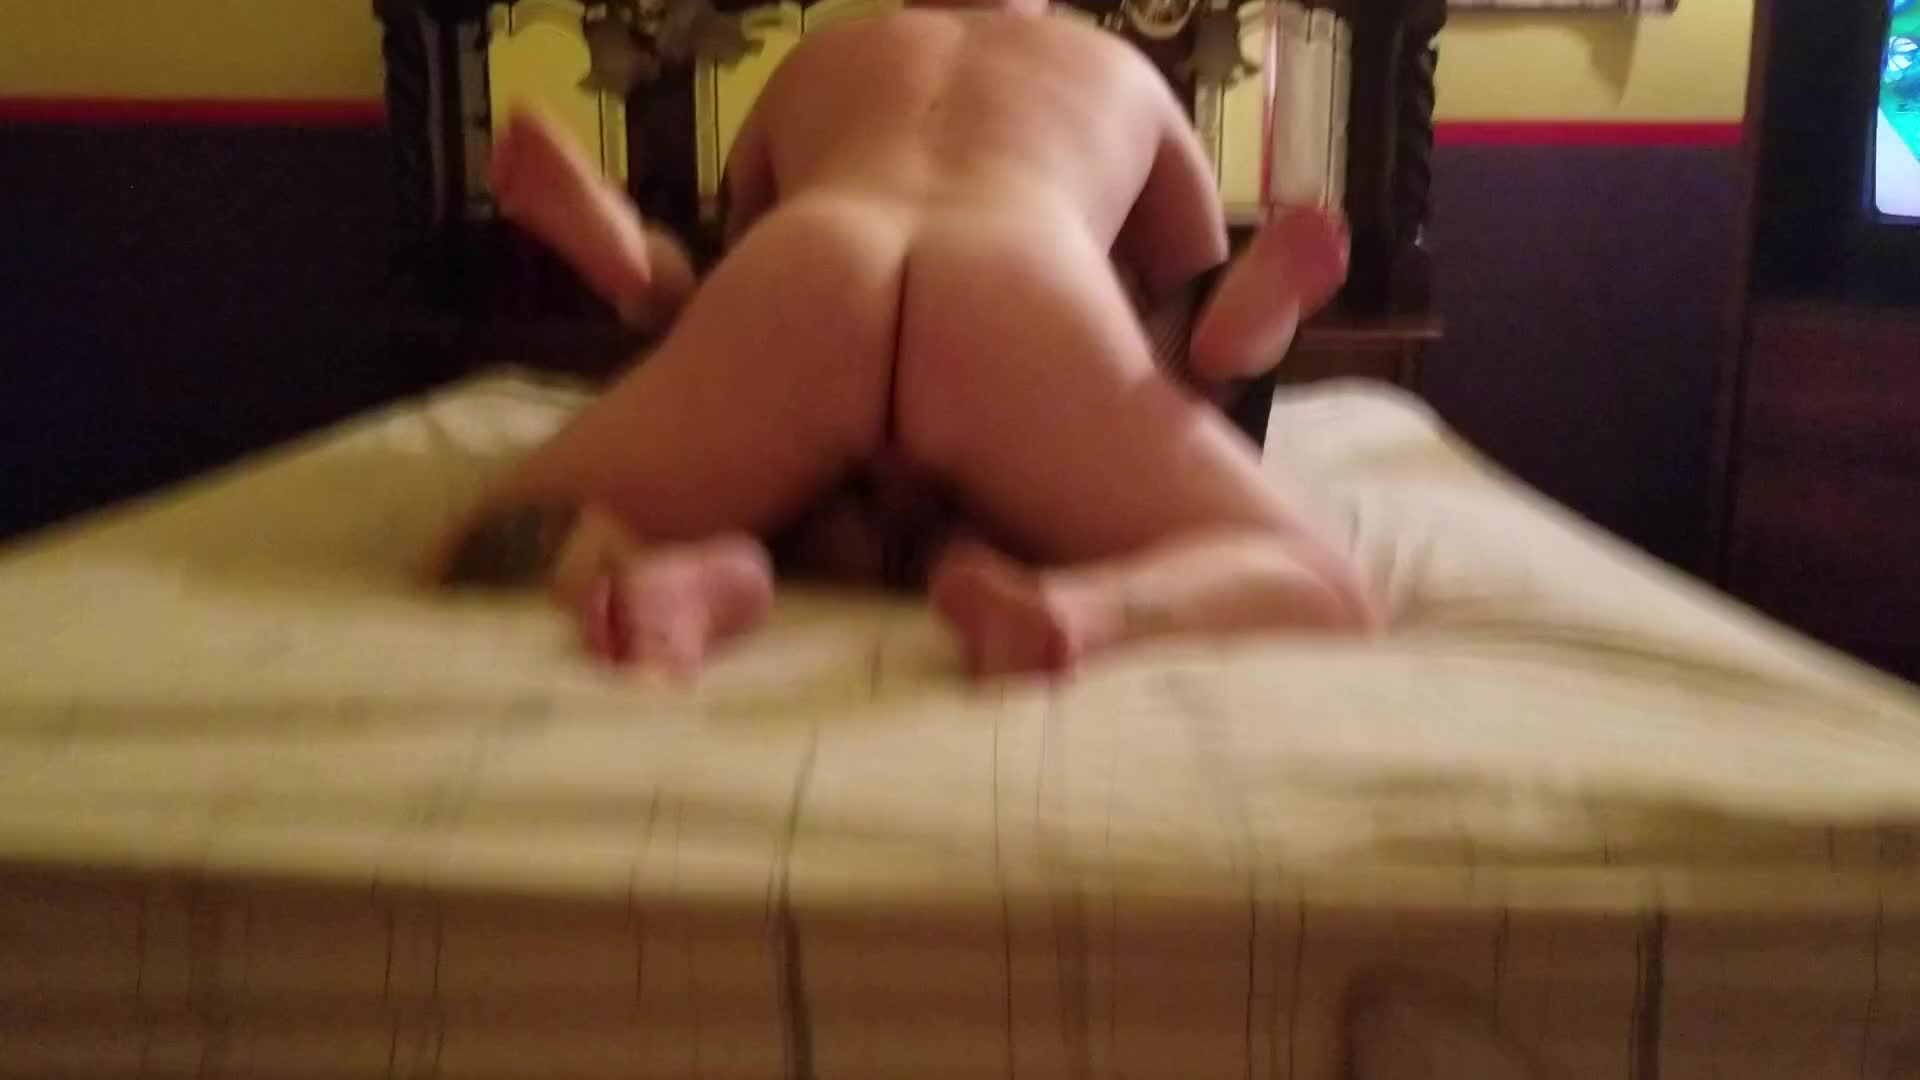 (Watch with sound) To hear Scott's balls slapping against me as he fucks me deep. Quite the sound :)